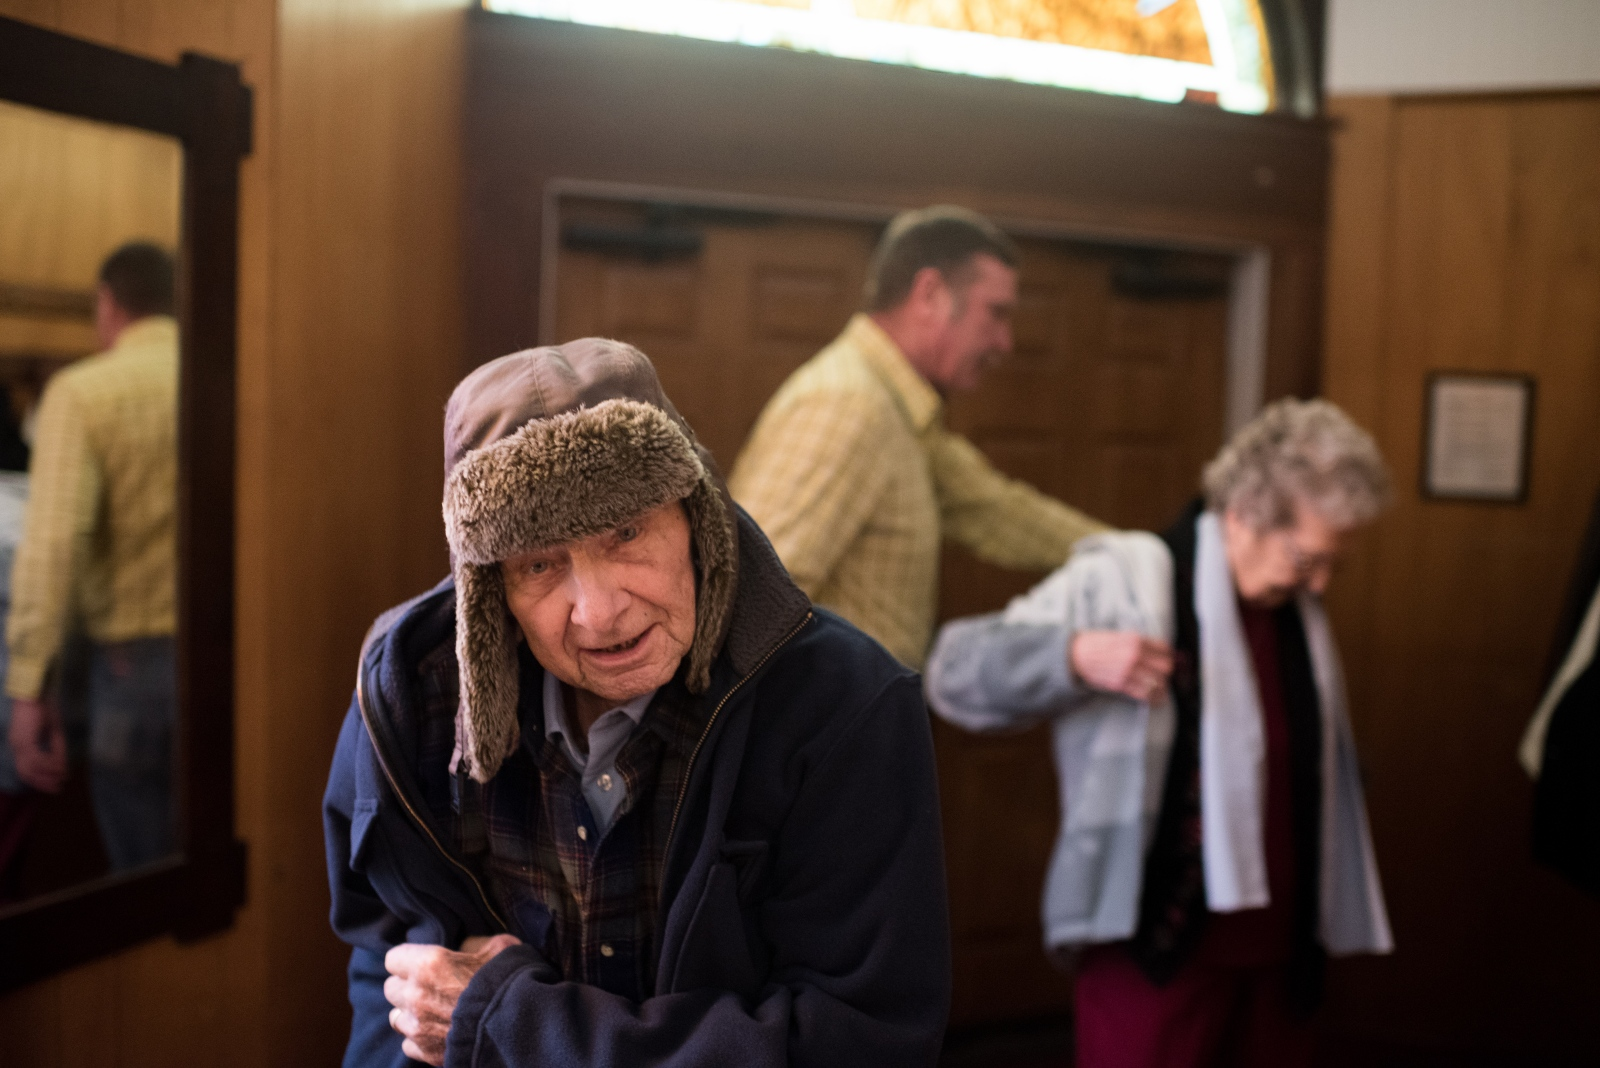 (left to right) Richard Vales, his son Bob Vales, and wife Joyce Vales, all prepare to leave the Coolville United Methodist Chruch after a service in February 2015.